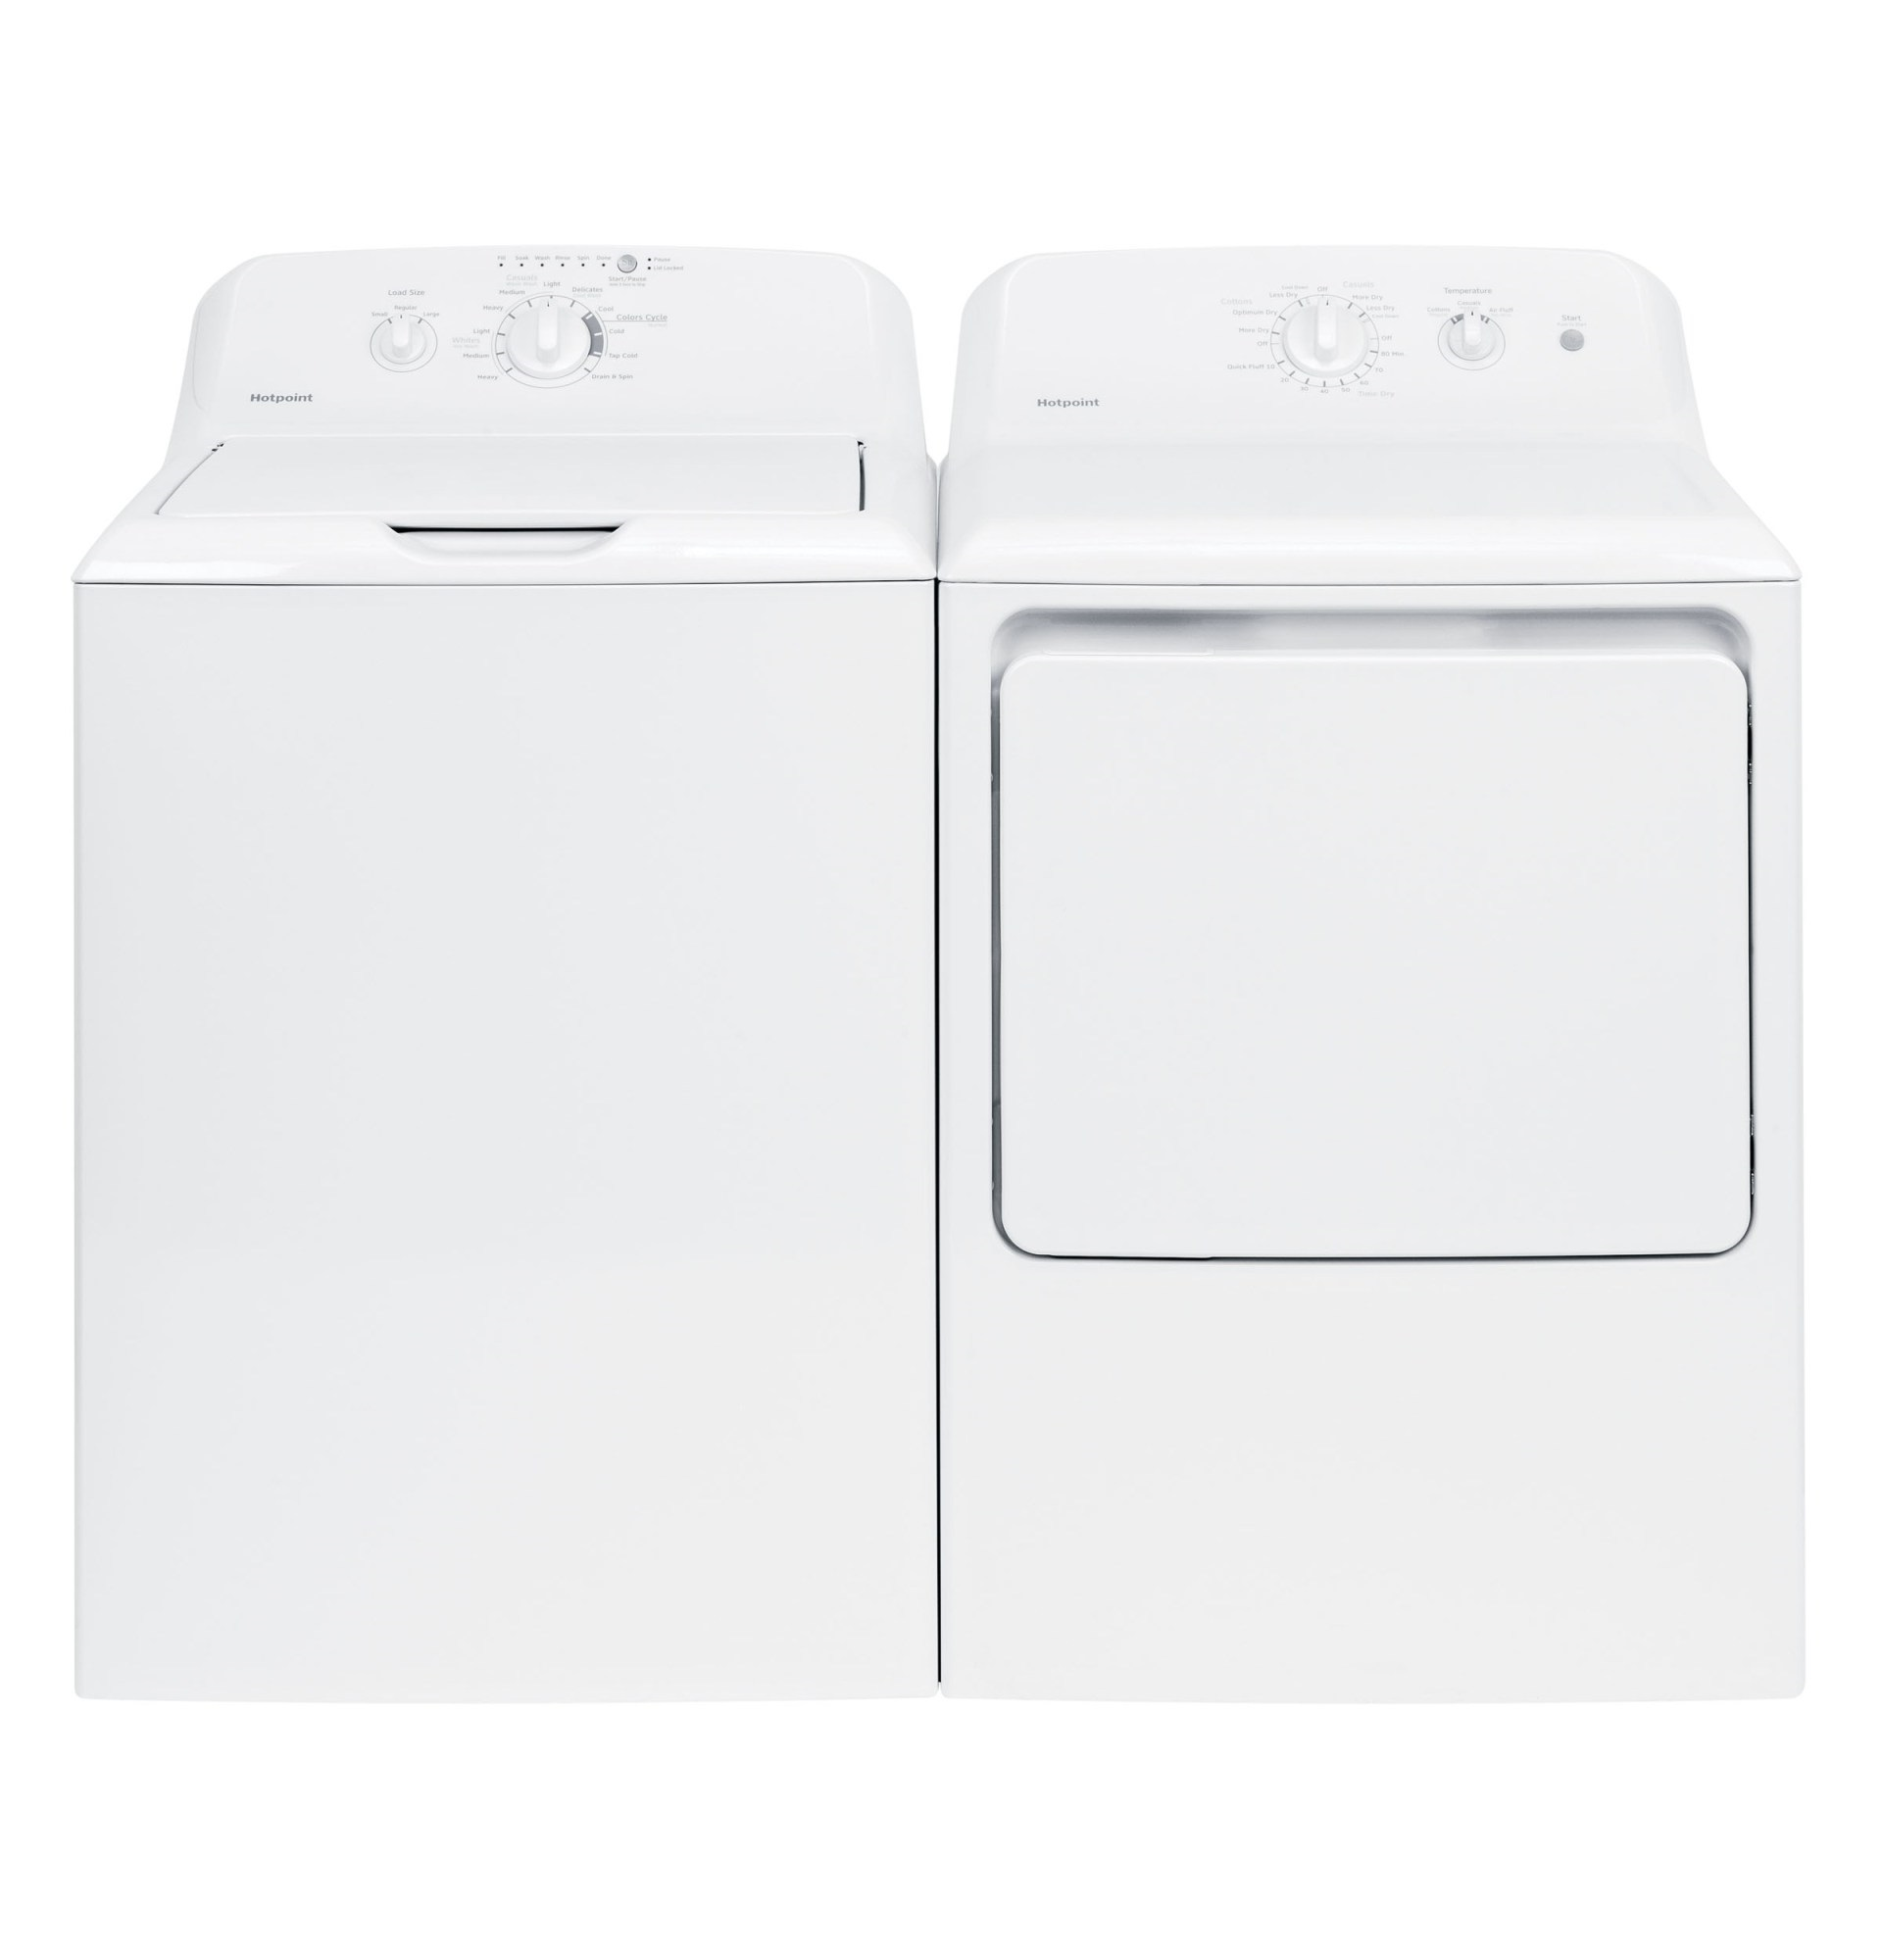 3.8 cu. ft. Top-Load Washer & Gas or Electric Dryer w/ Aluminized Alloy Drum - White